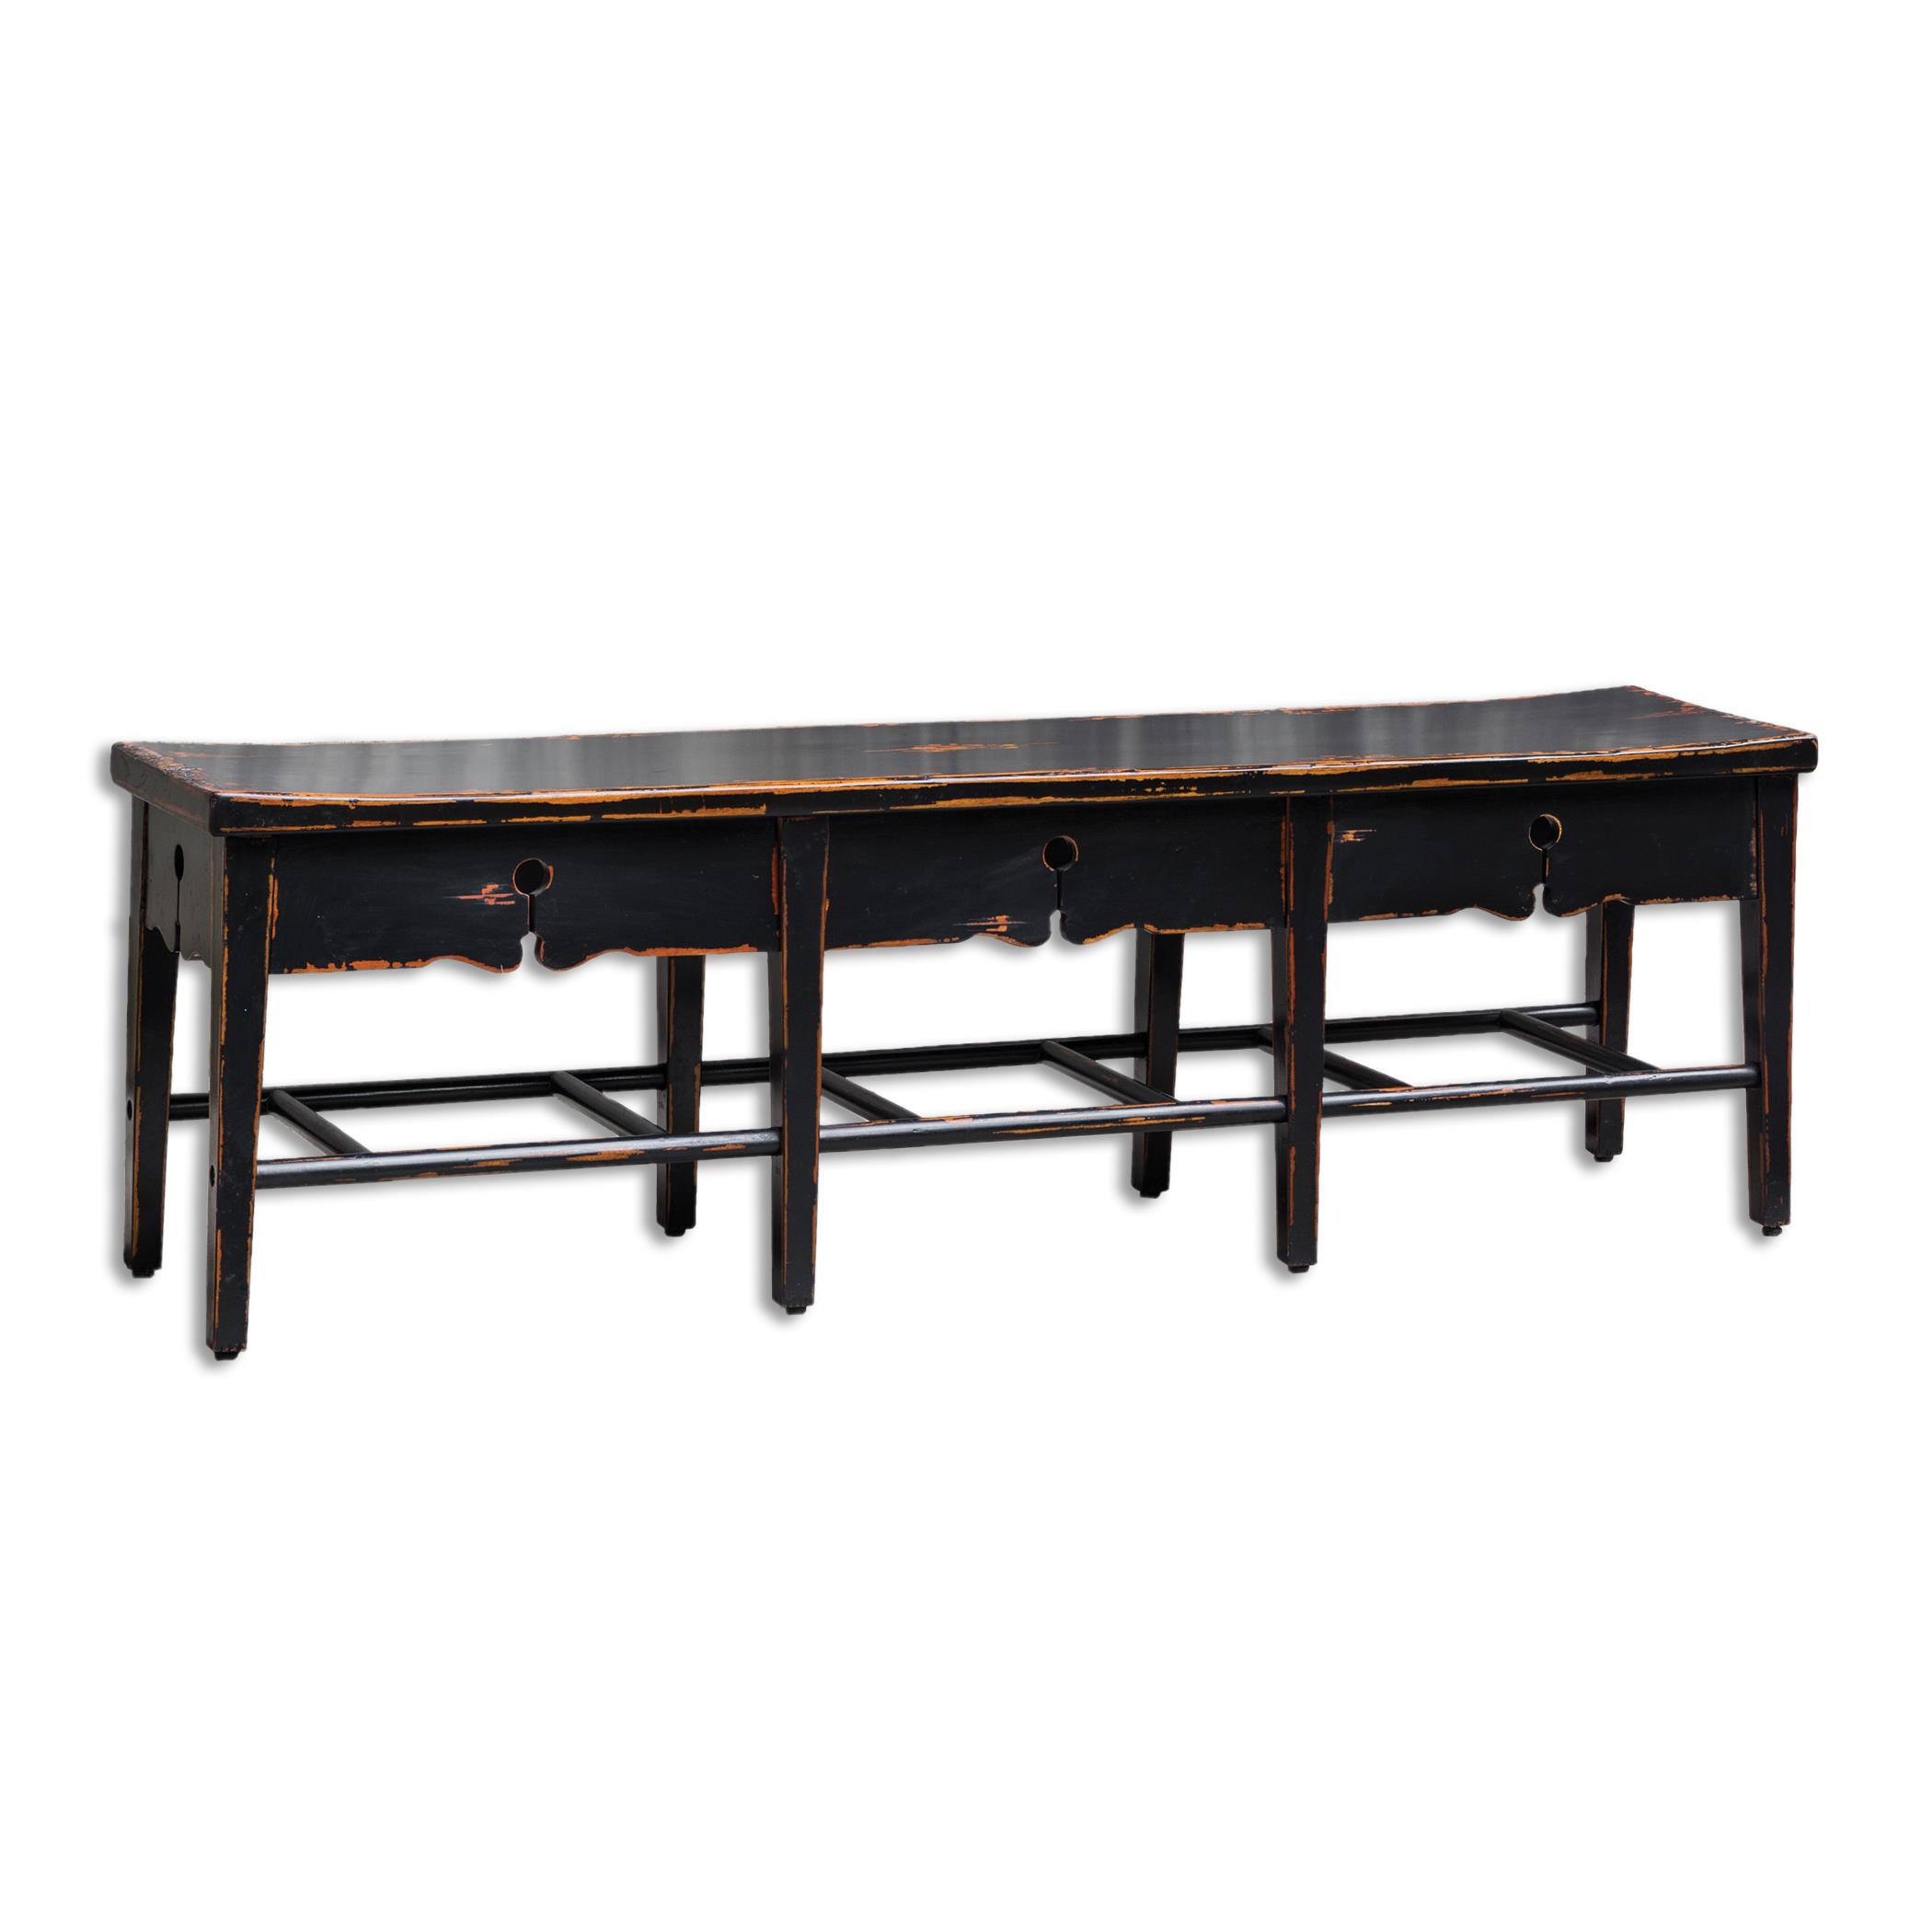 Uttermost Accent Furniture Dalit Mahogany 3-Seat Bench - Item Number: 25683